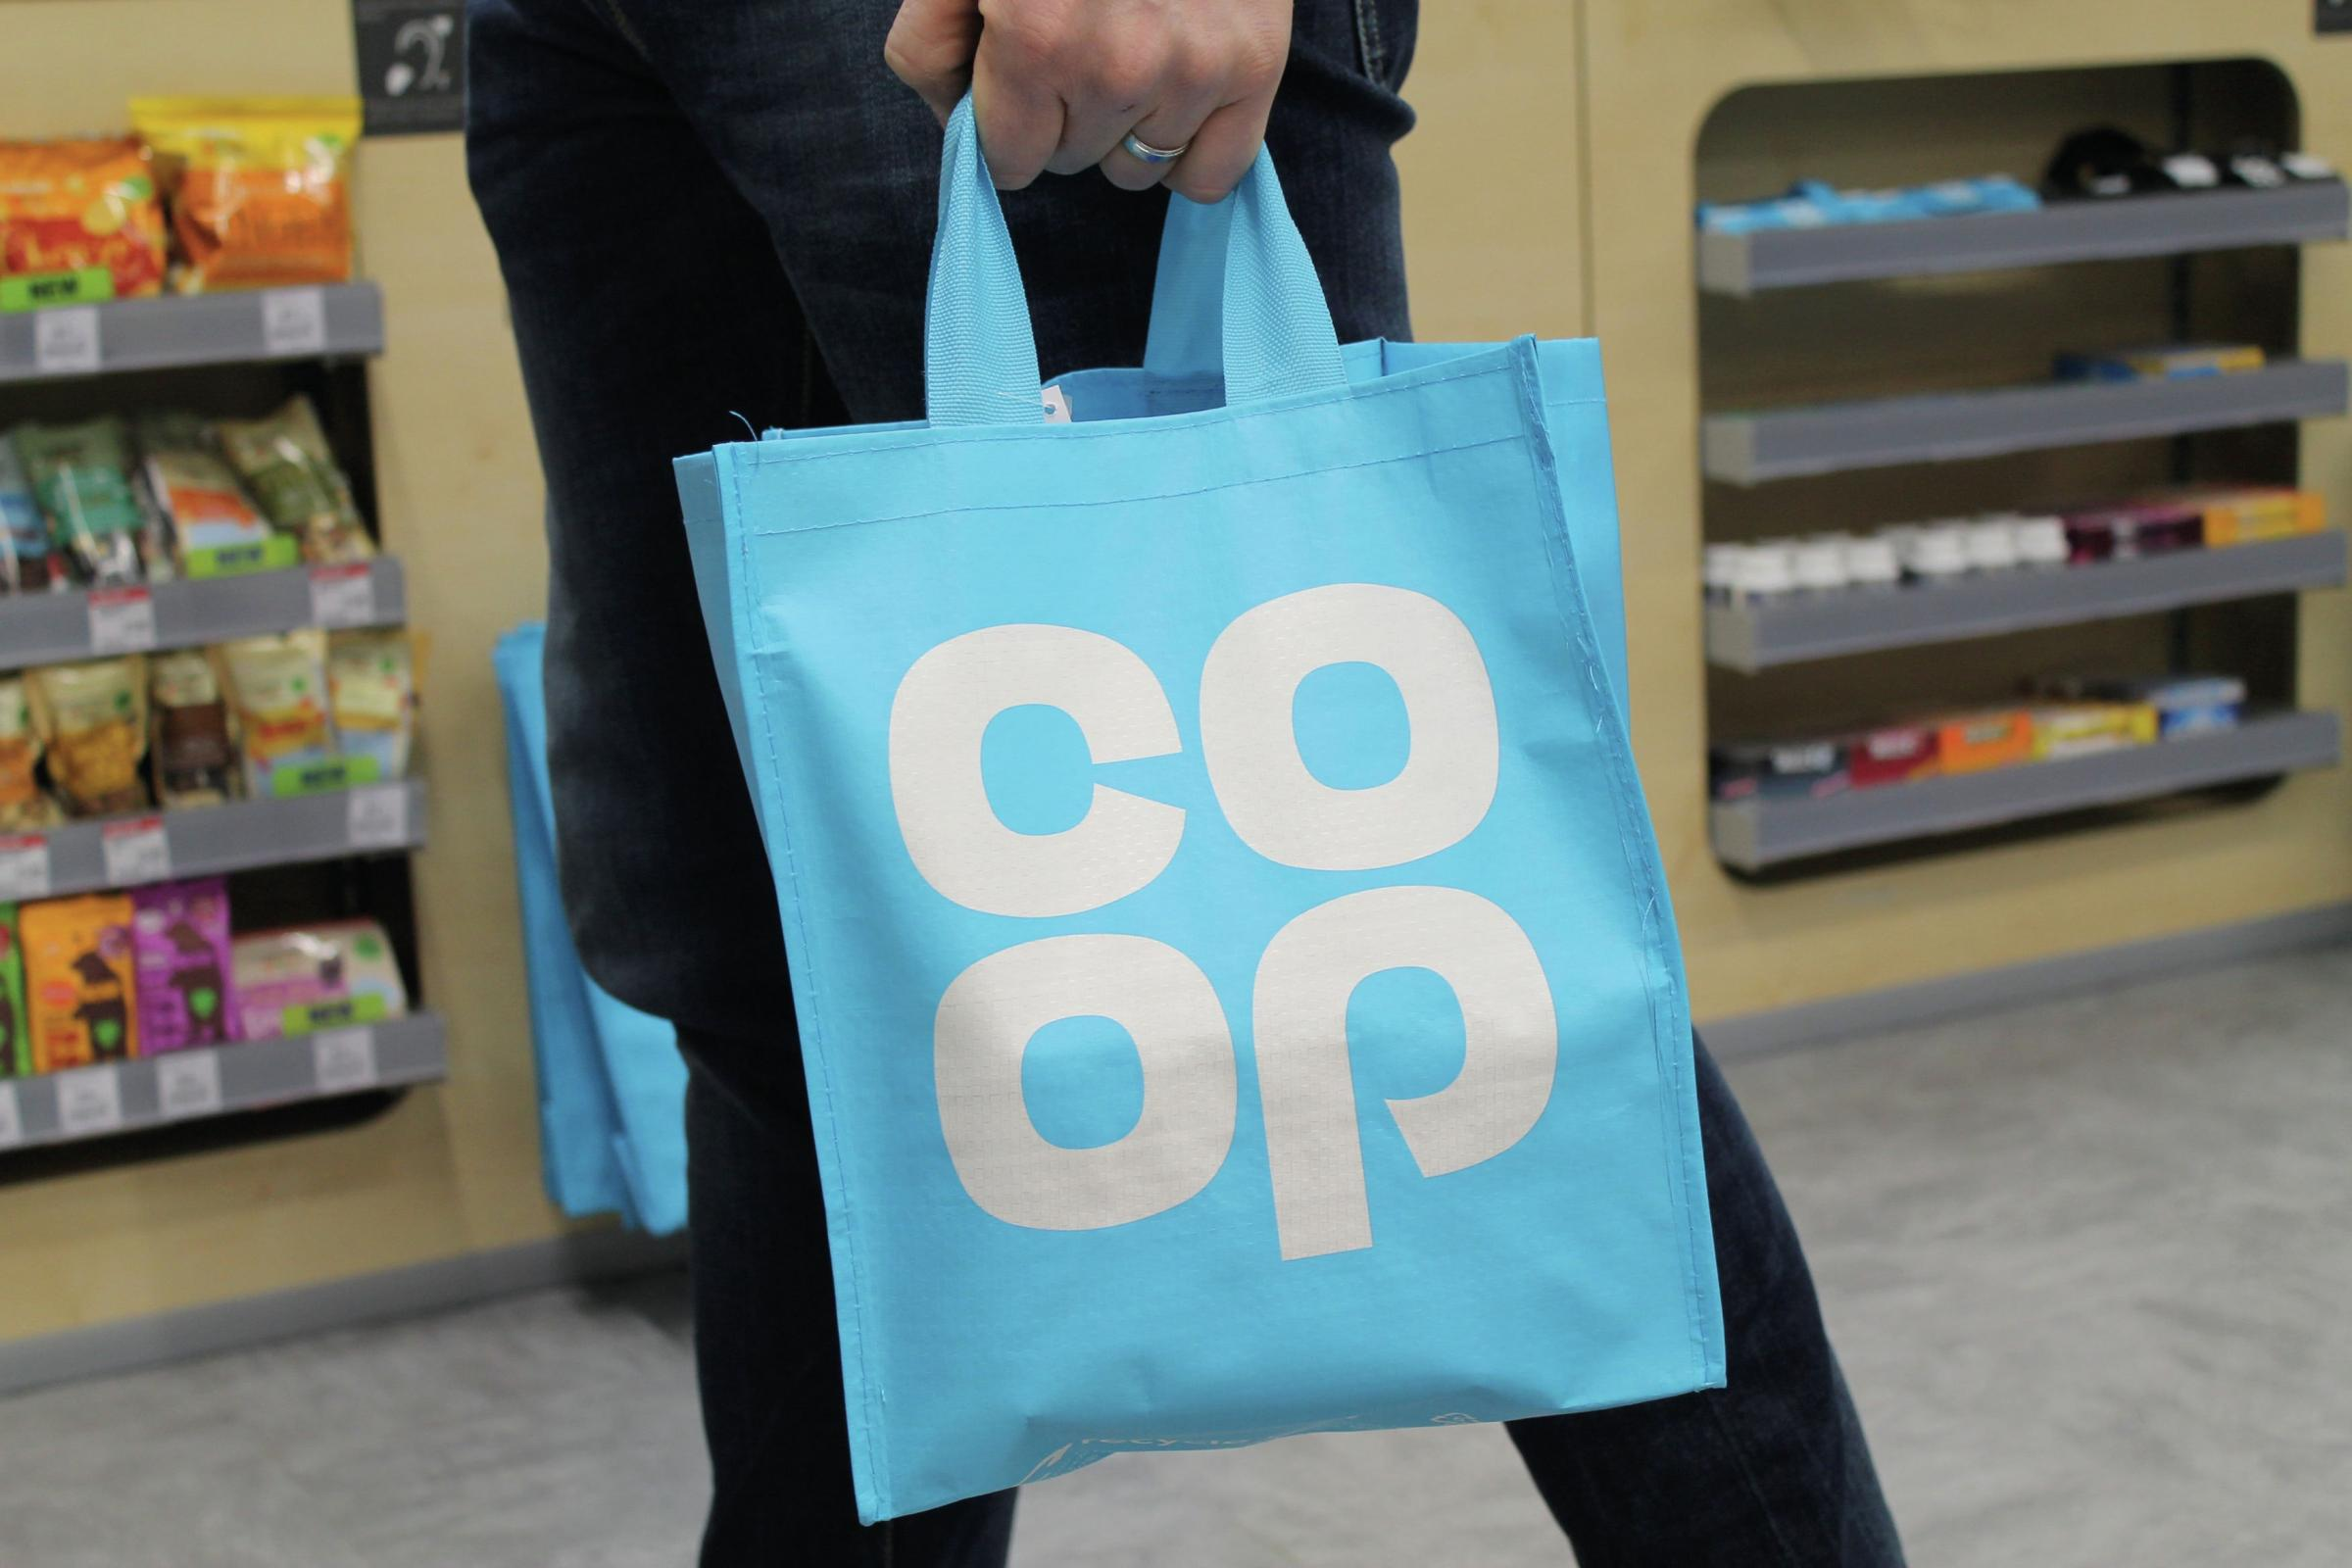 Co-op gets go-ahead for new store